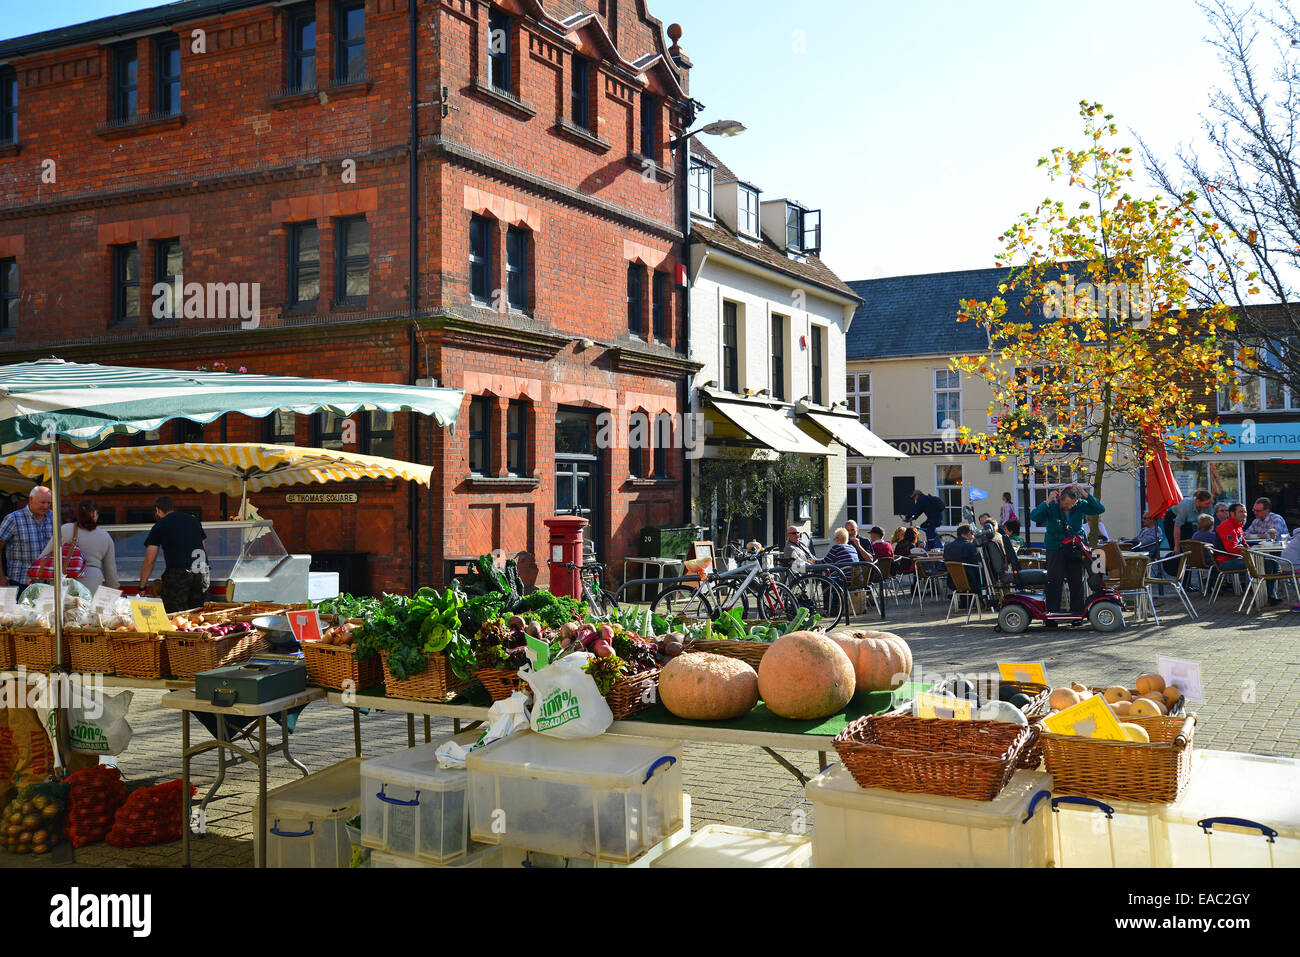 Farmer's Market stall, St Thomas' Square, Newport, Isle of Wight, England, United Kingdom - Stock Image